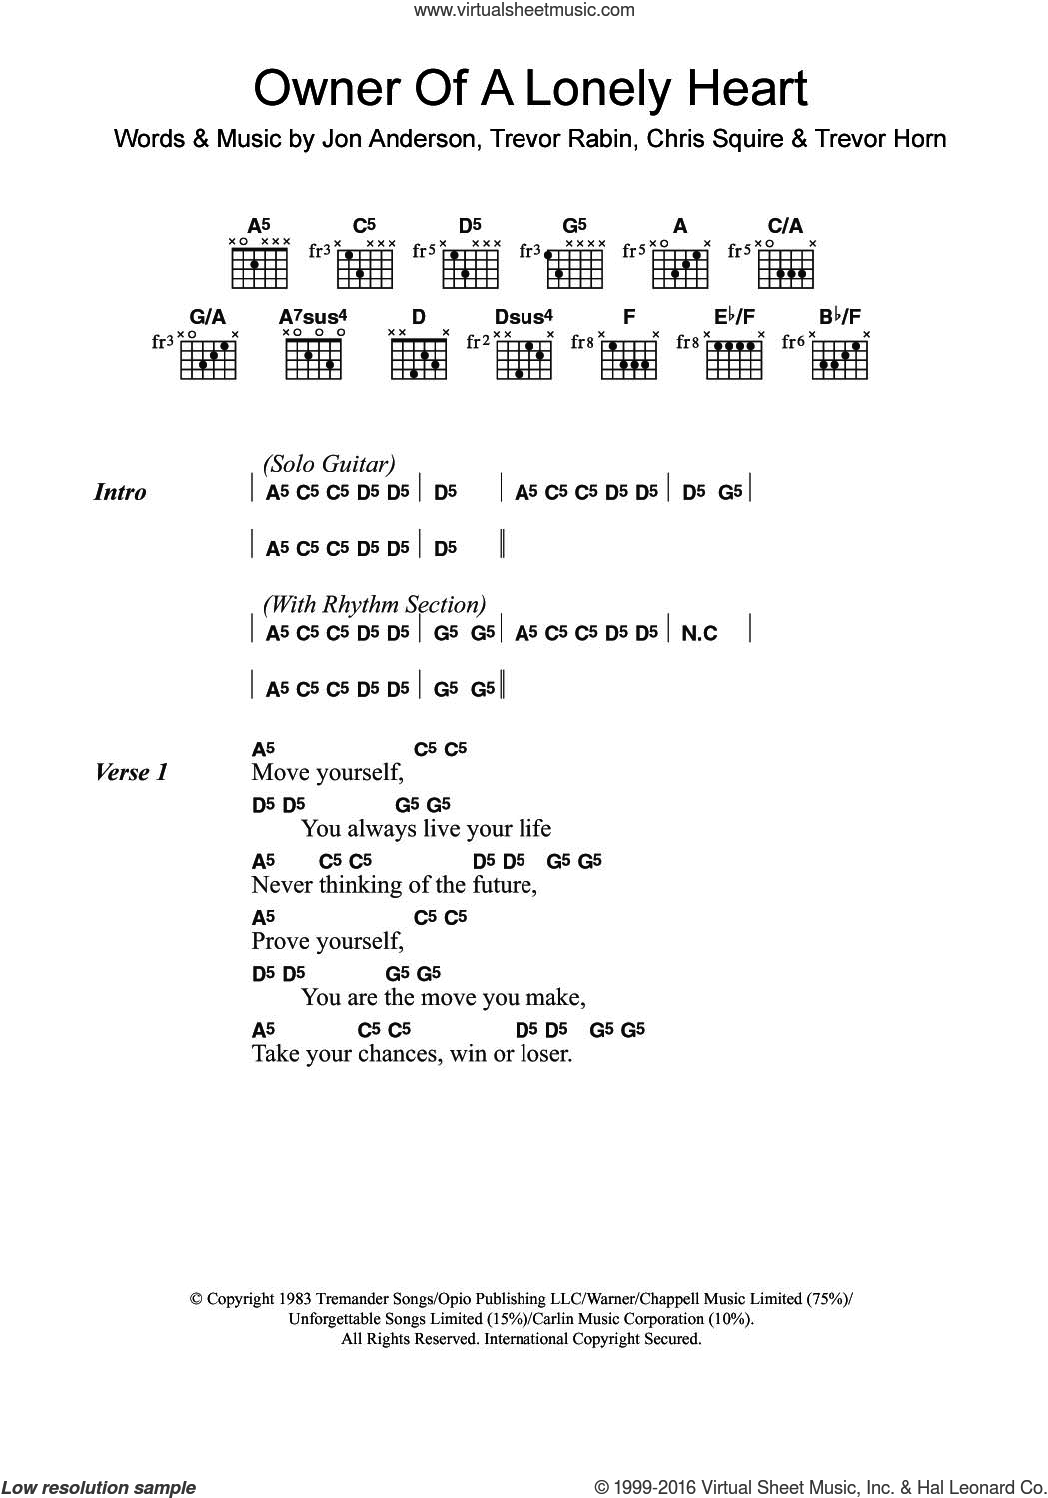 Owner Of A Lonely Heart sheet music for guitar (chords) by Yes, Chris Squire, Jon Anderson, Trevor Horn and Trevor Rabin, intermediate skill level